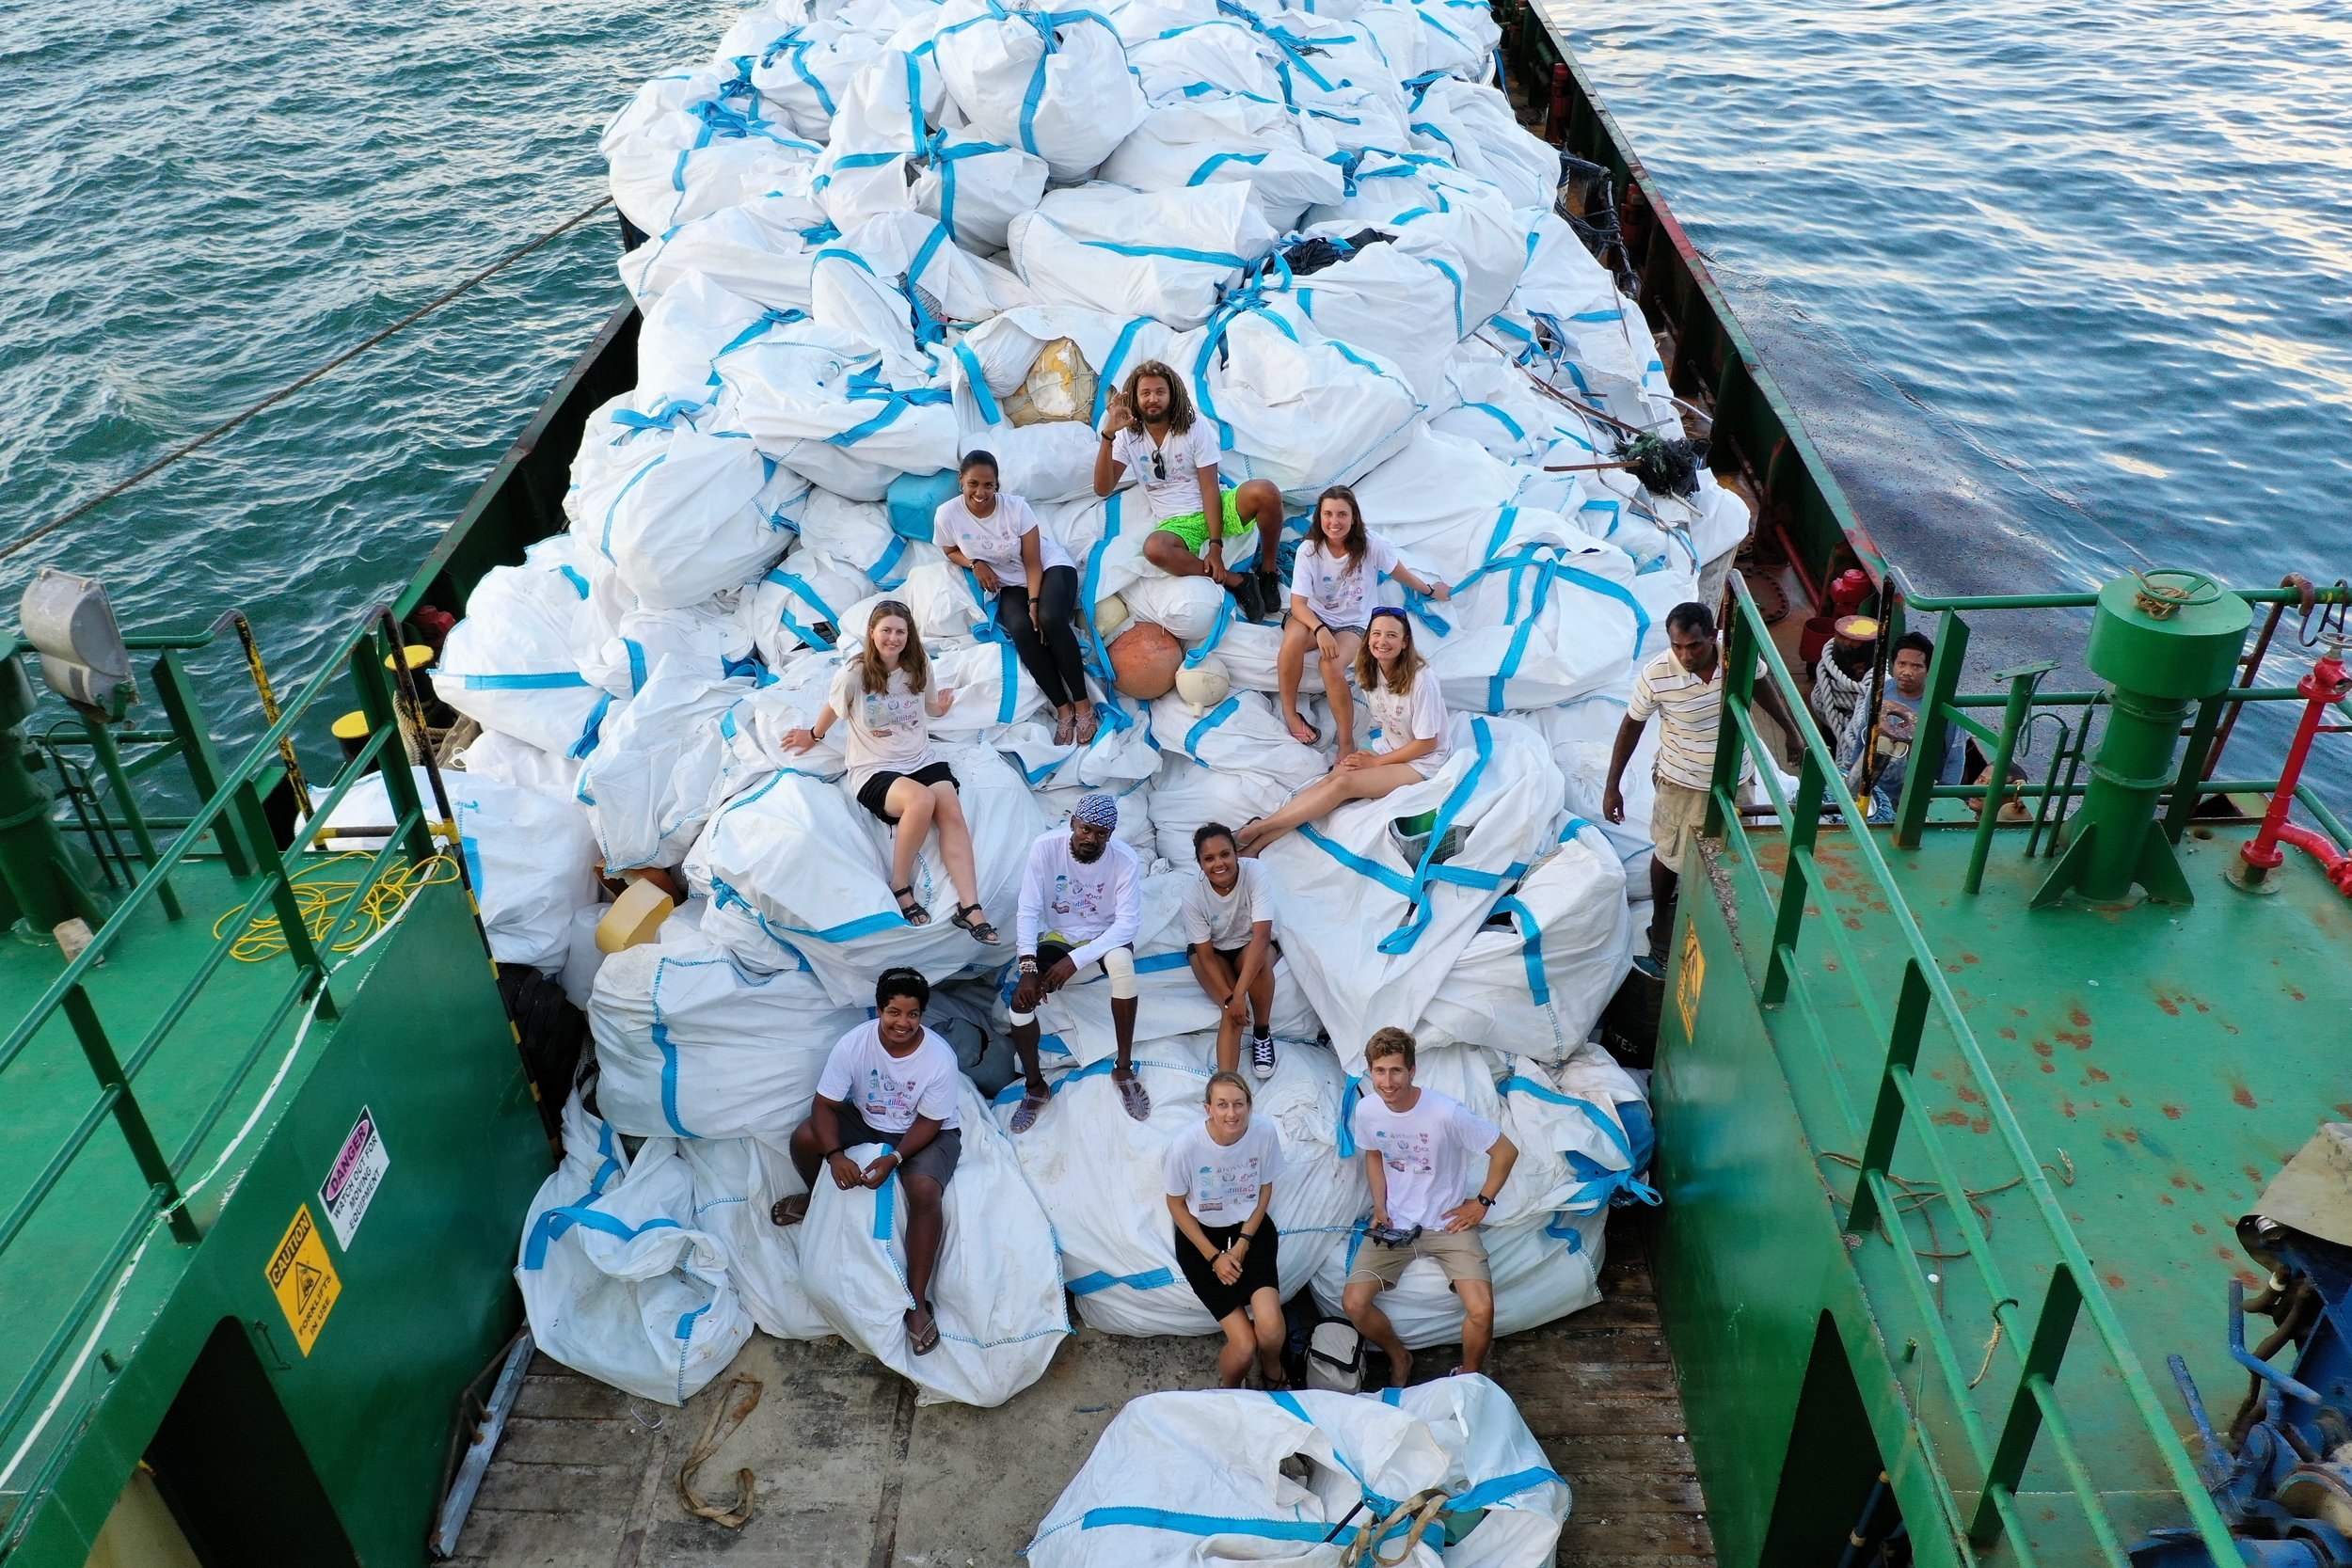 April Burt, her team, and over 26 tons of recovered ocean plastic pollution